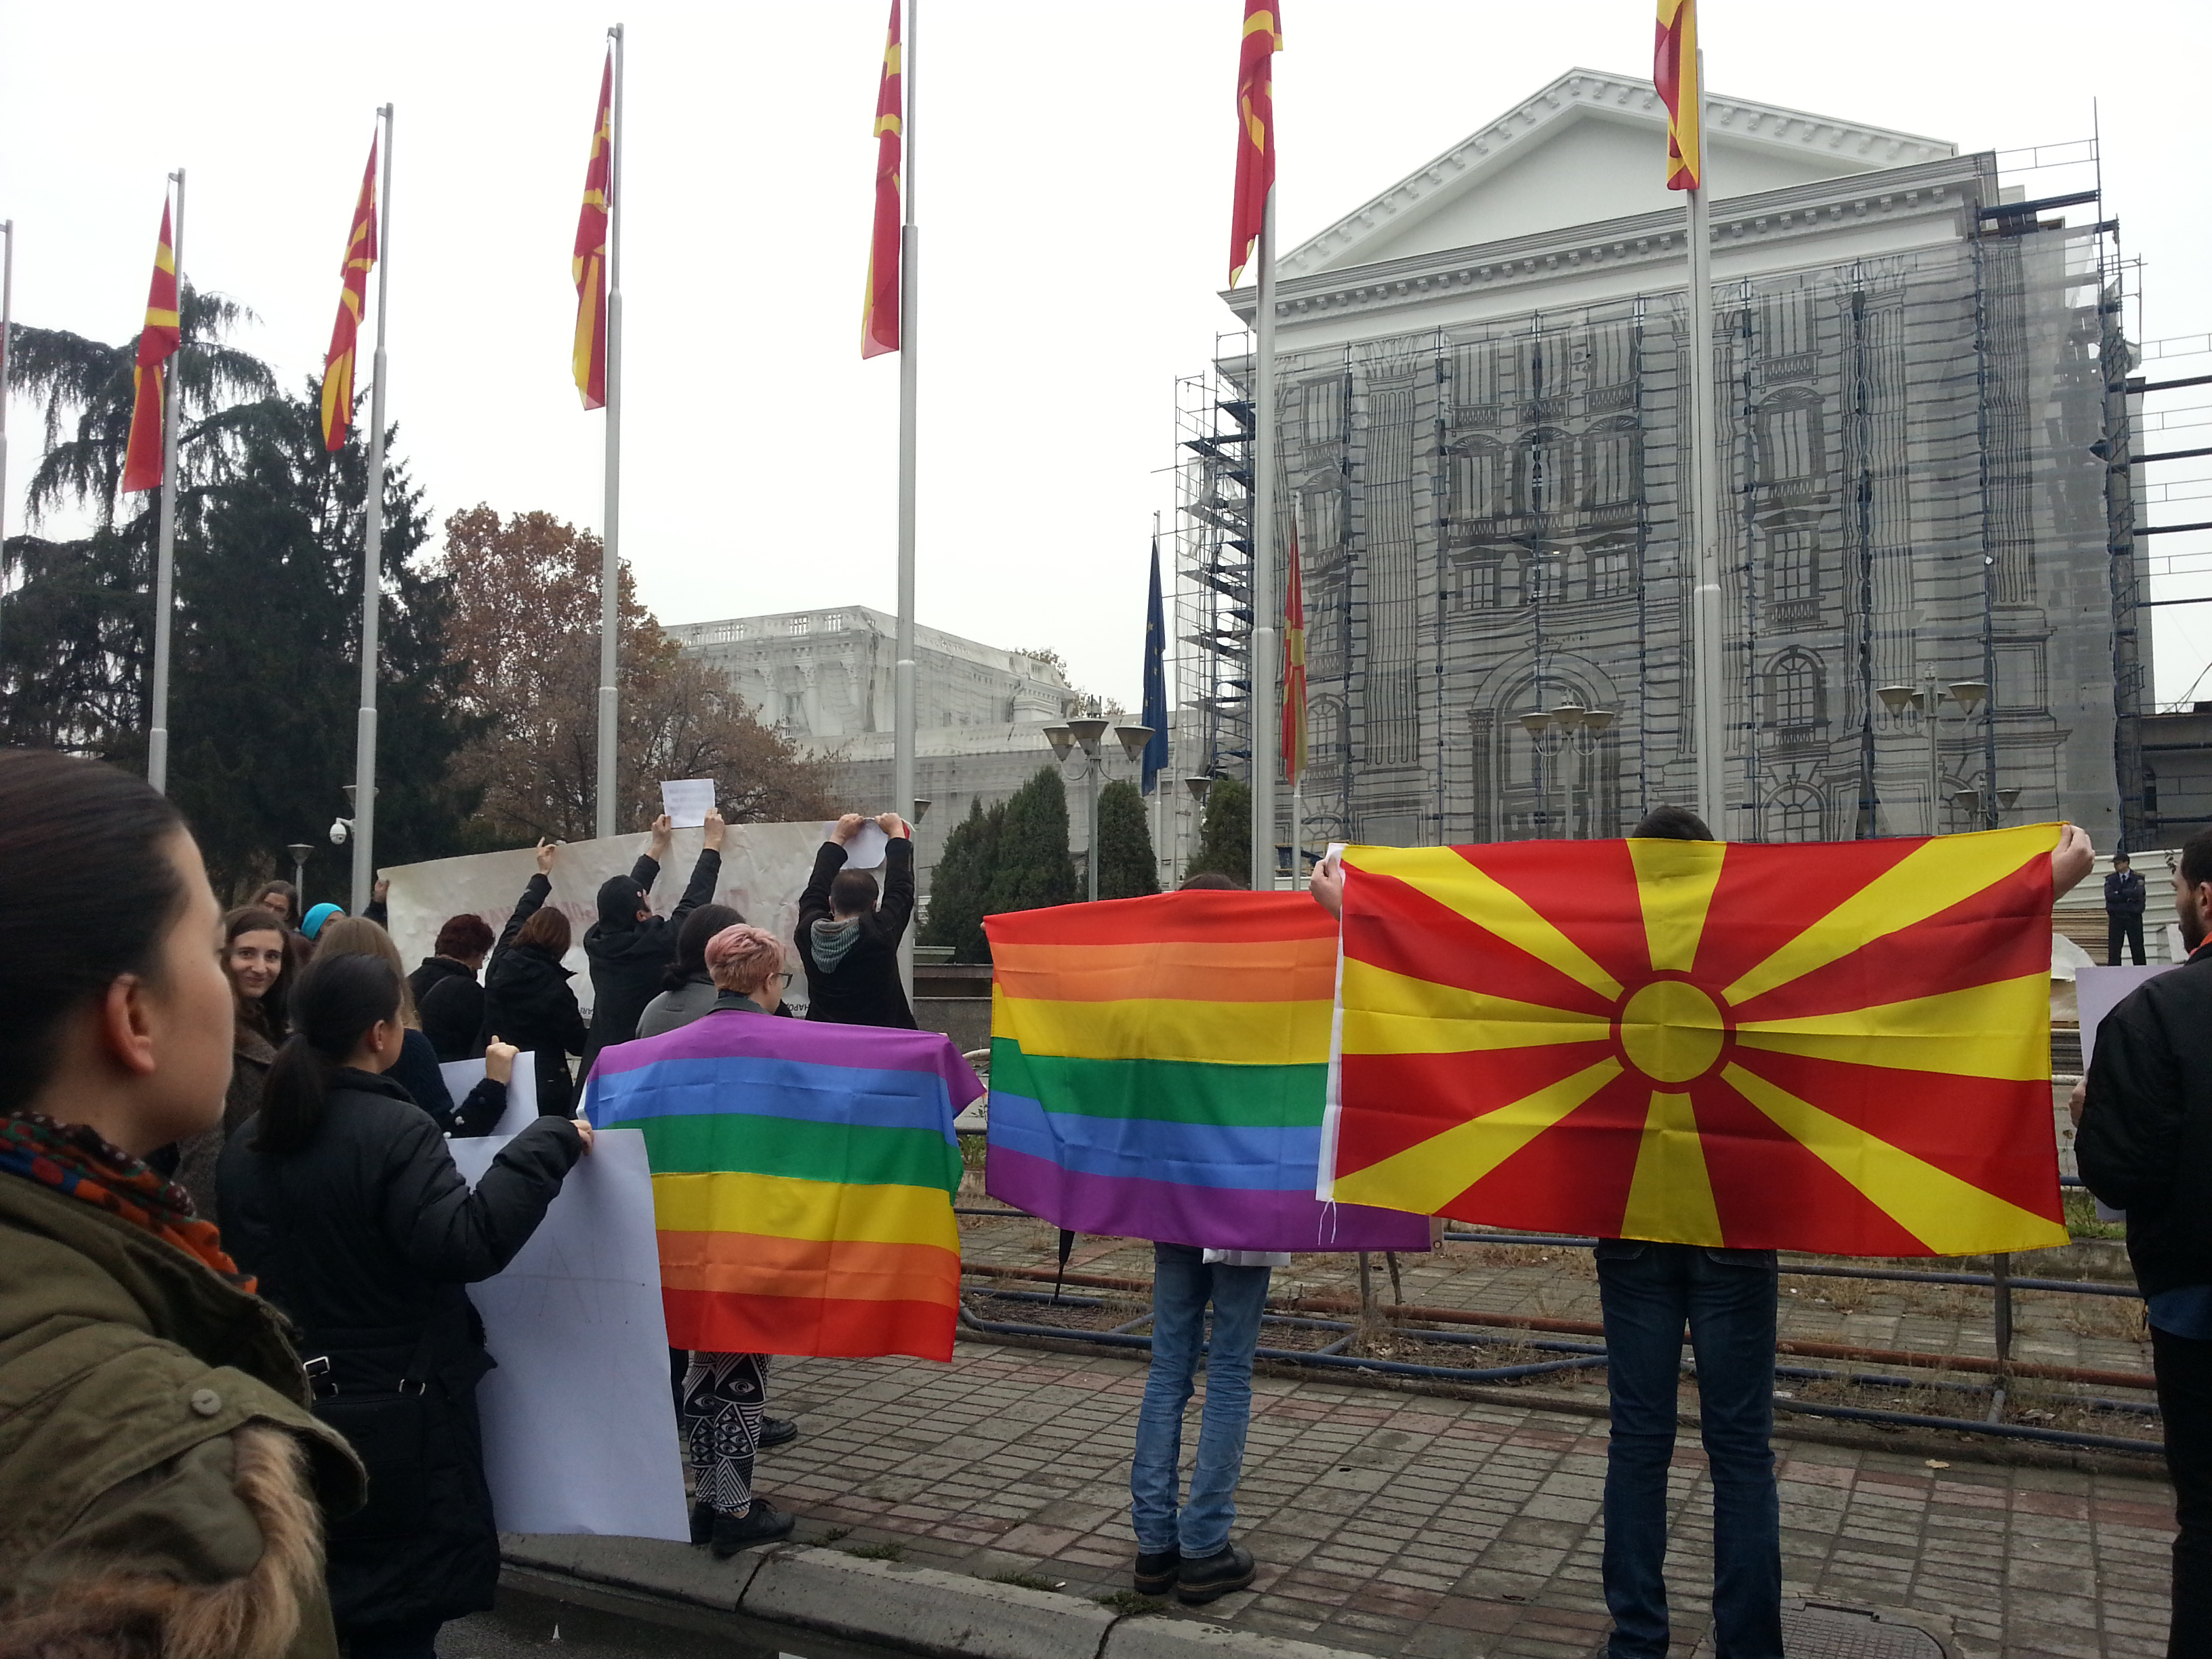 Activists stand in silent protest in front of the building of the Government of Republic of Macedonia in Skopje, November 16, 2014. Photo: F. Stojanovski, CC-BY.